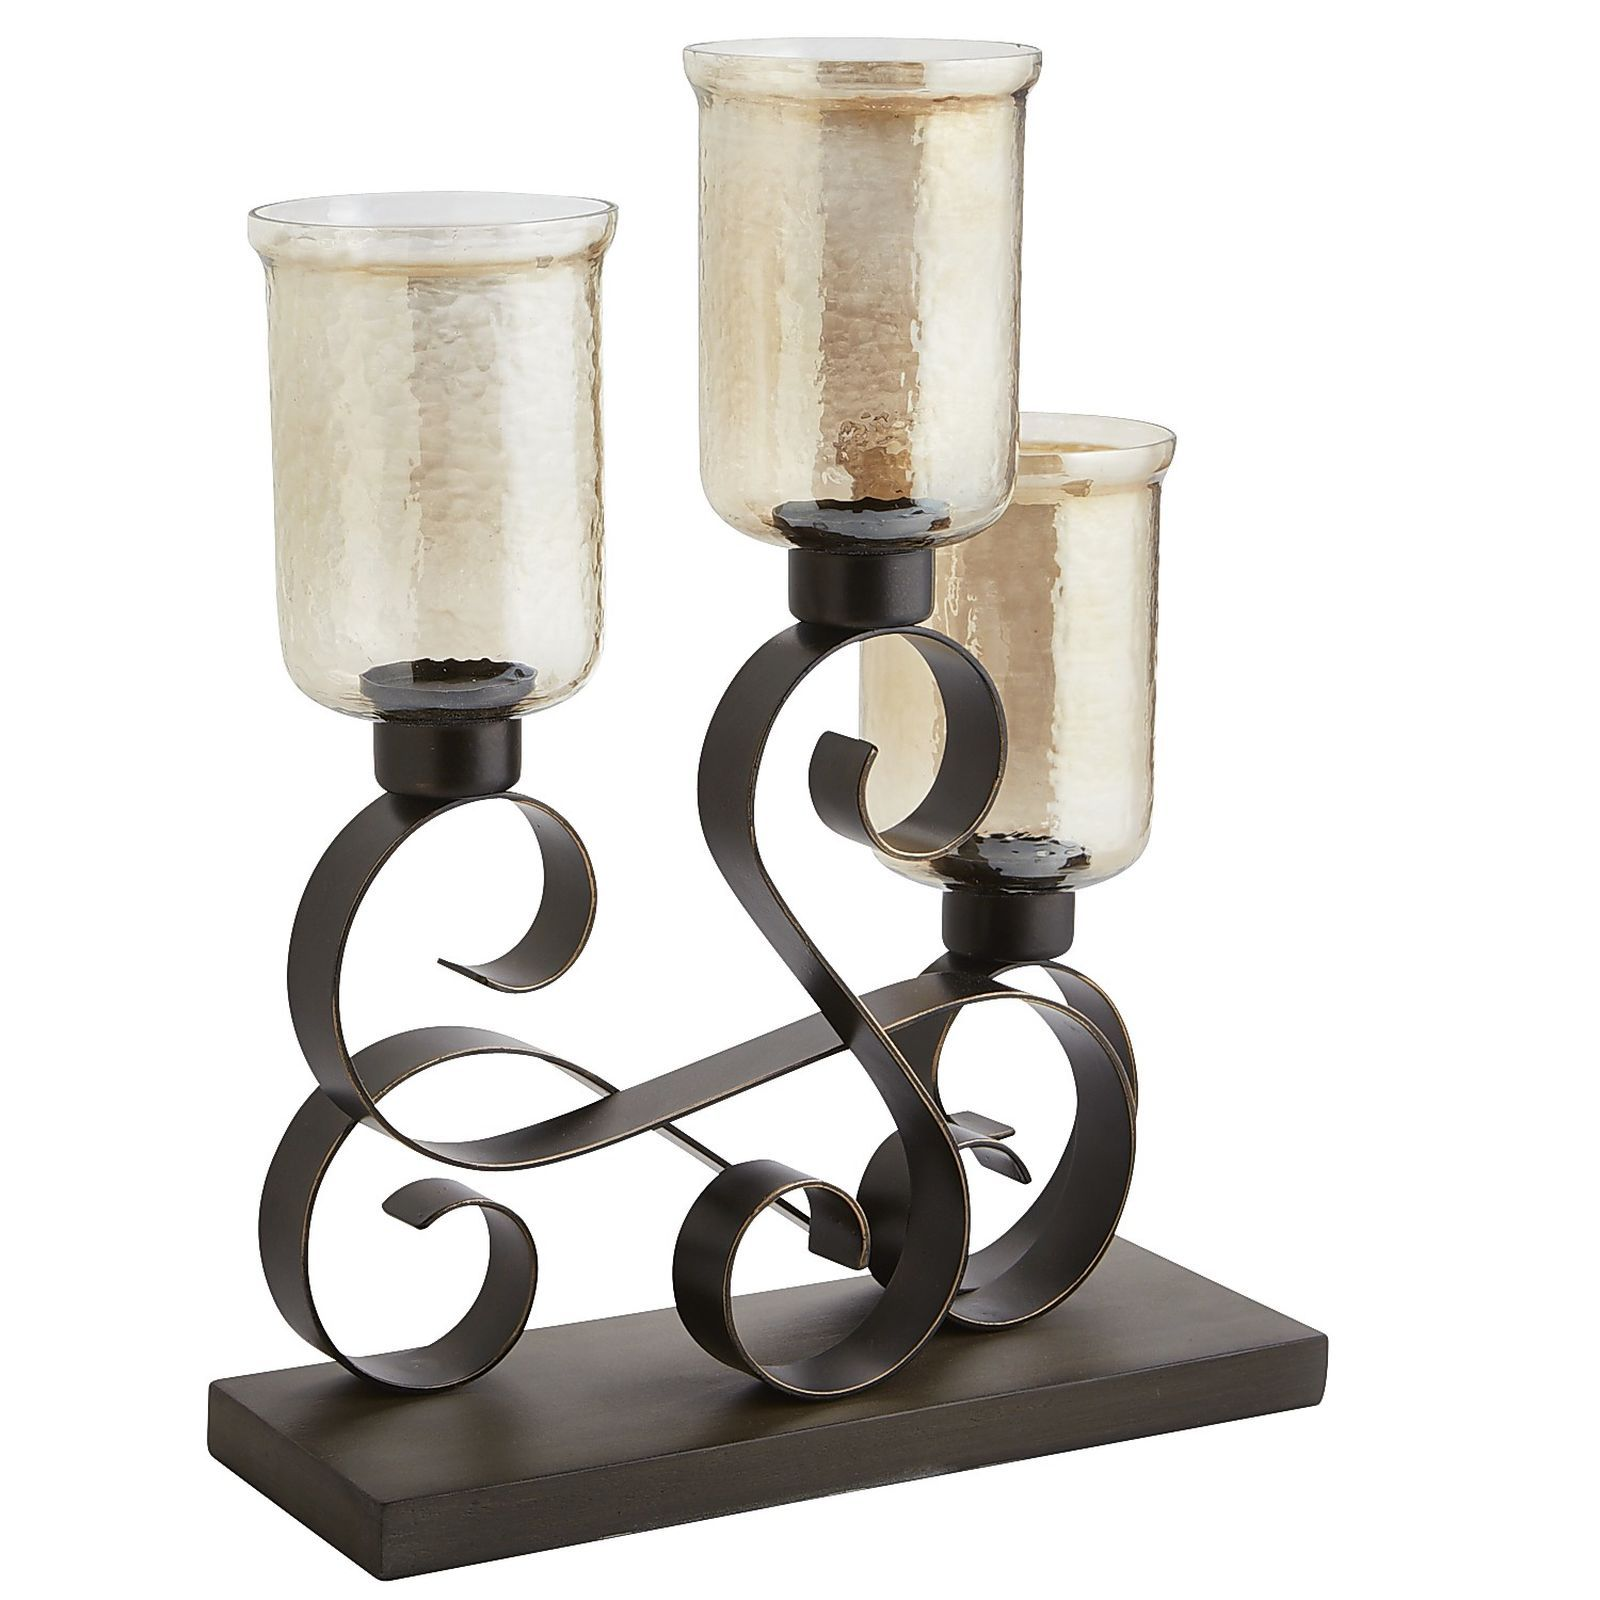 Sundara Scroll Pillar Centerpiece Candle Holders Candleholder Centerpieces Candles